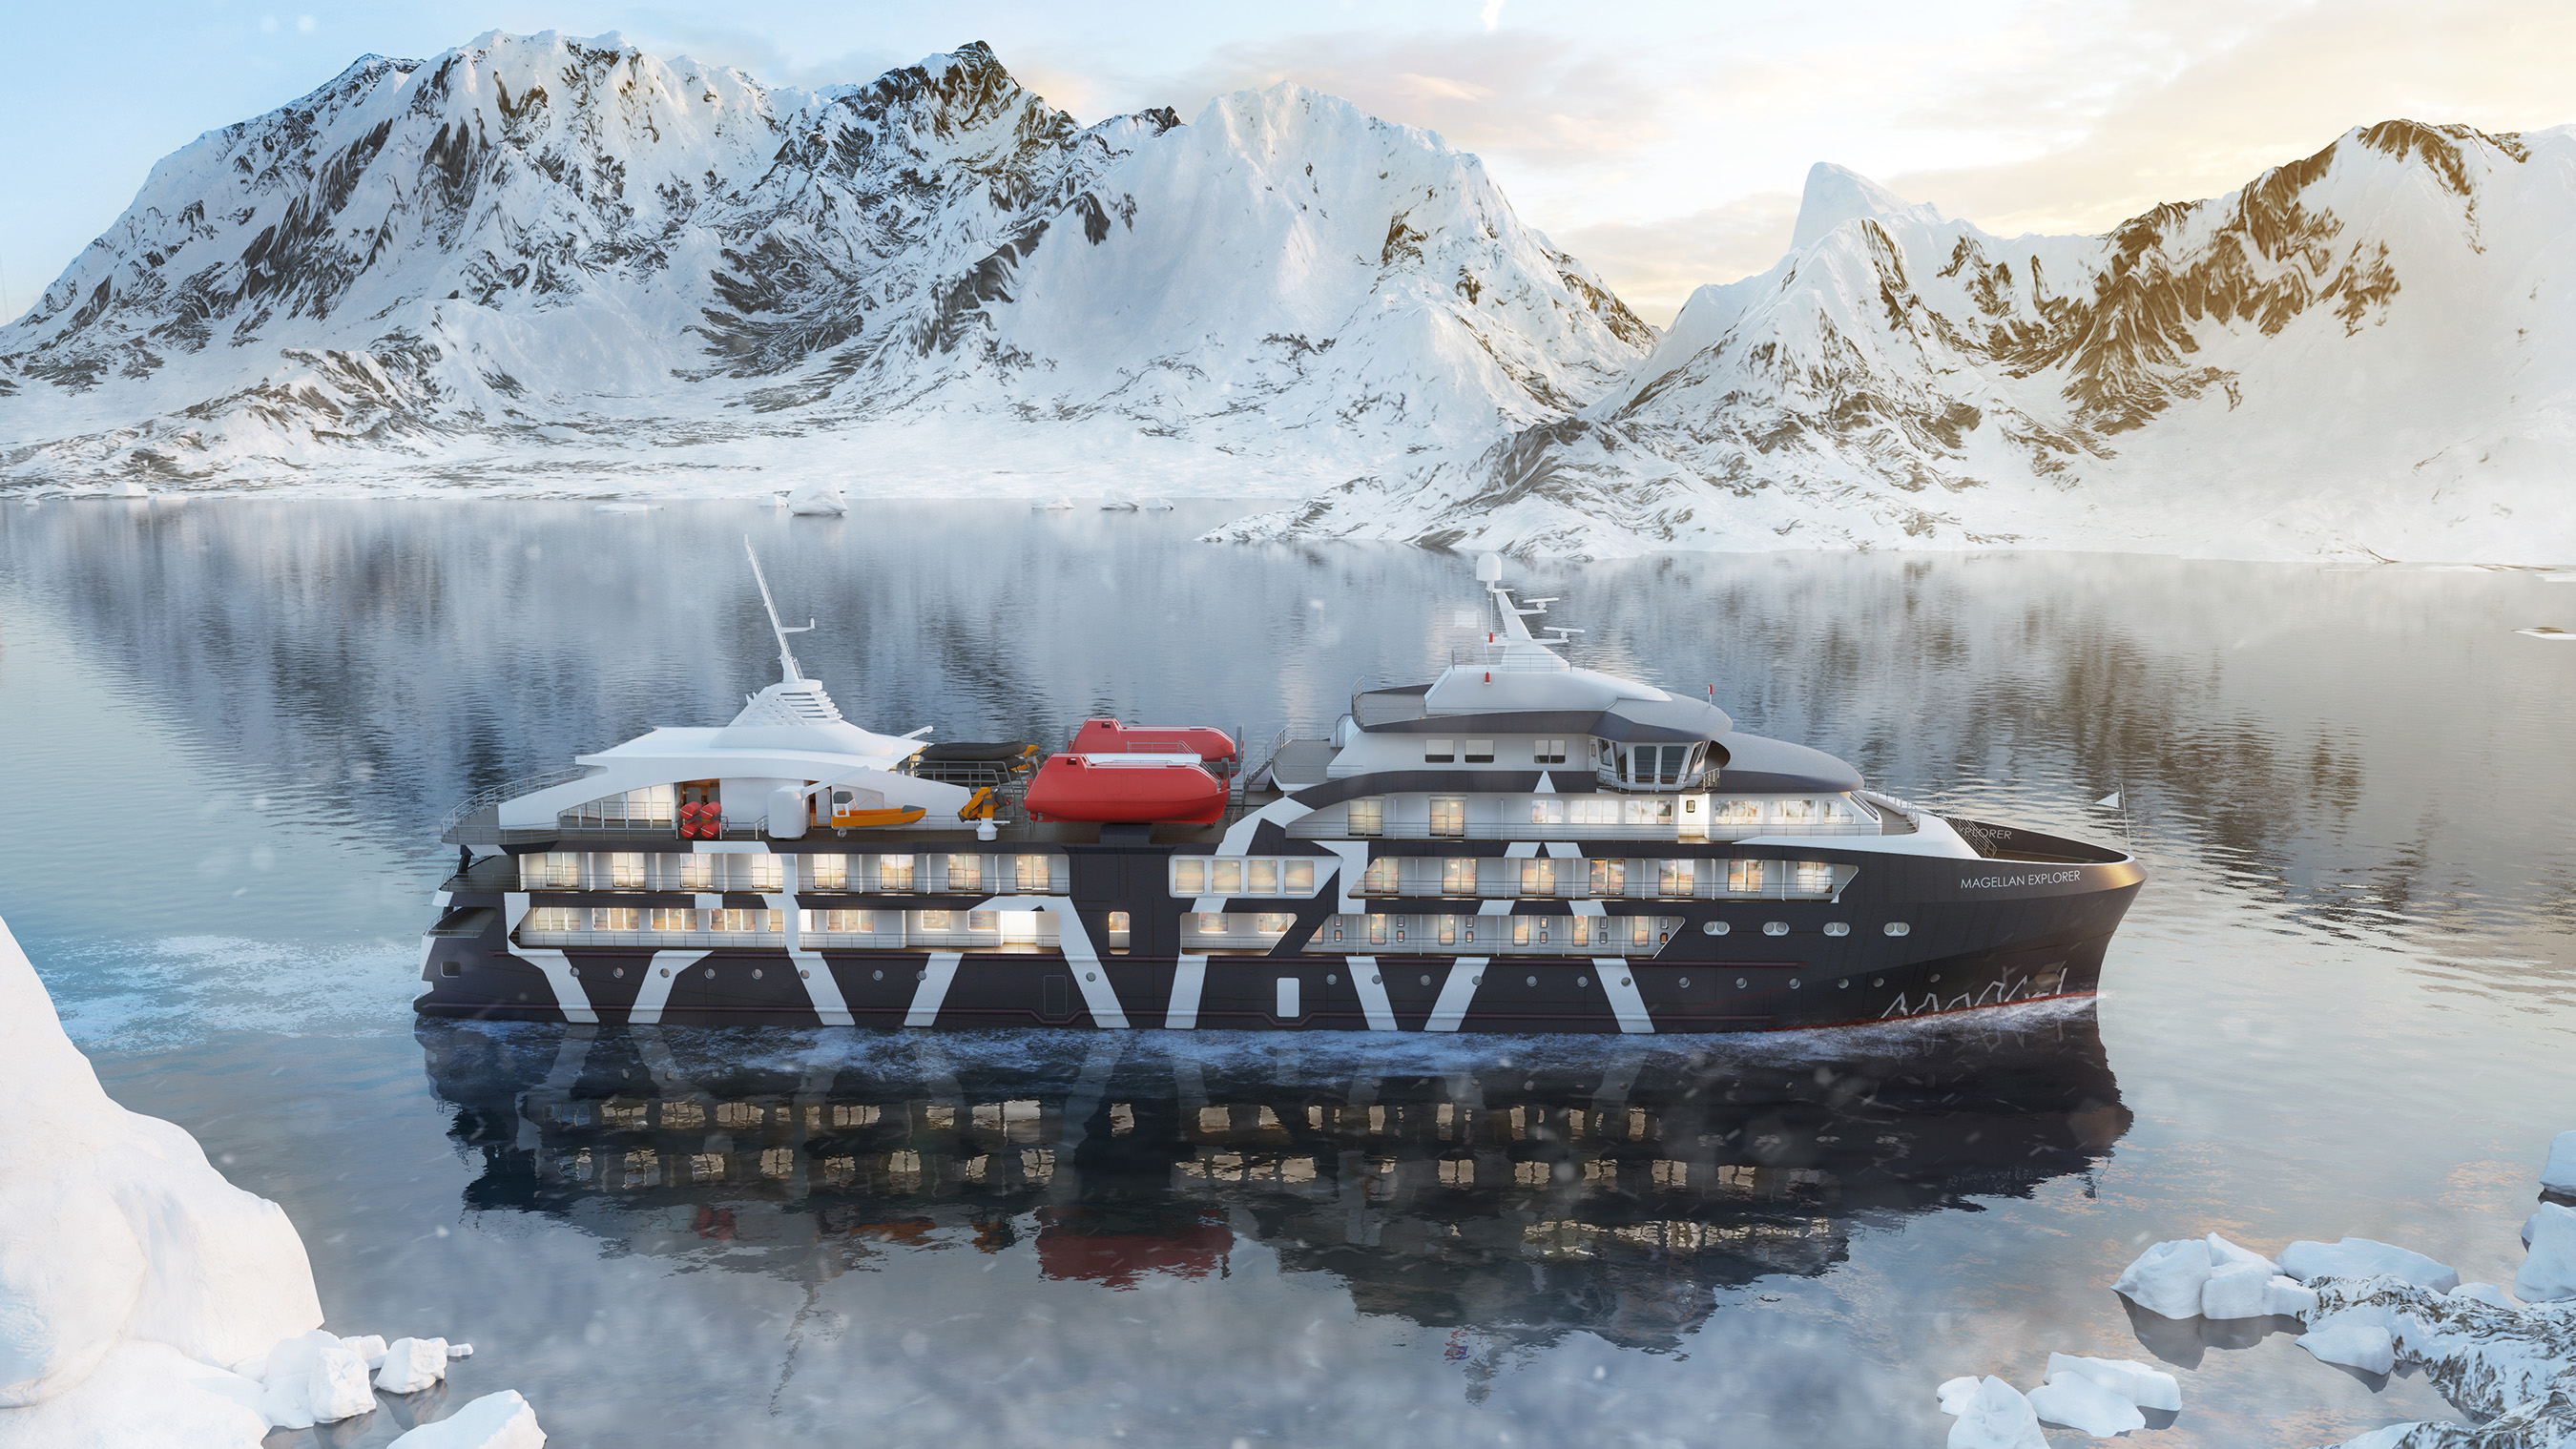 The Magellan Explorer, Antarctica21's newest ship, is a luxury expedition vessel, custom built in Chile for Antarctic air-cruises - and equipped with an Anytime Fitness gym onboard!